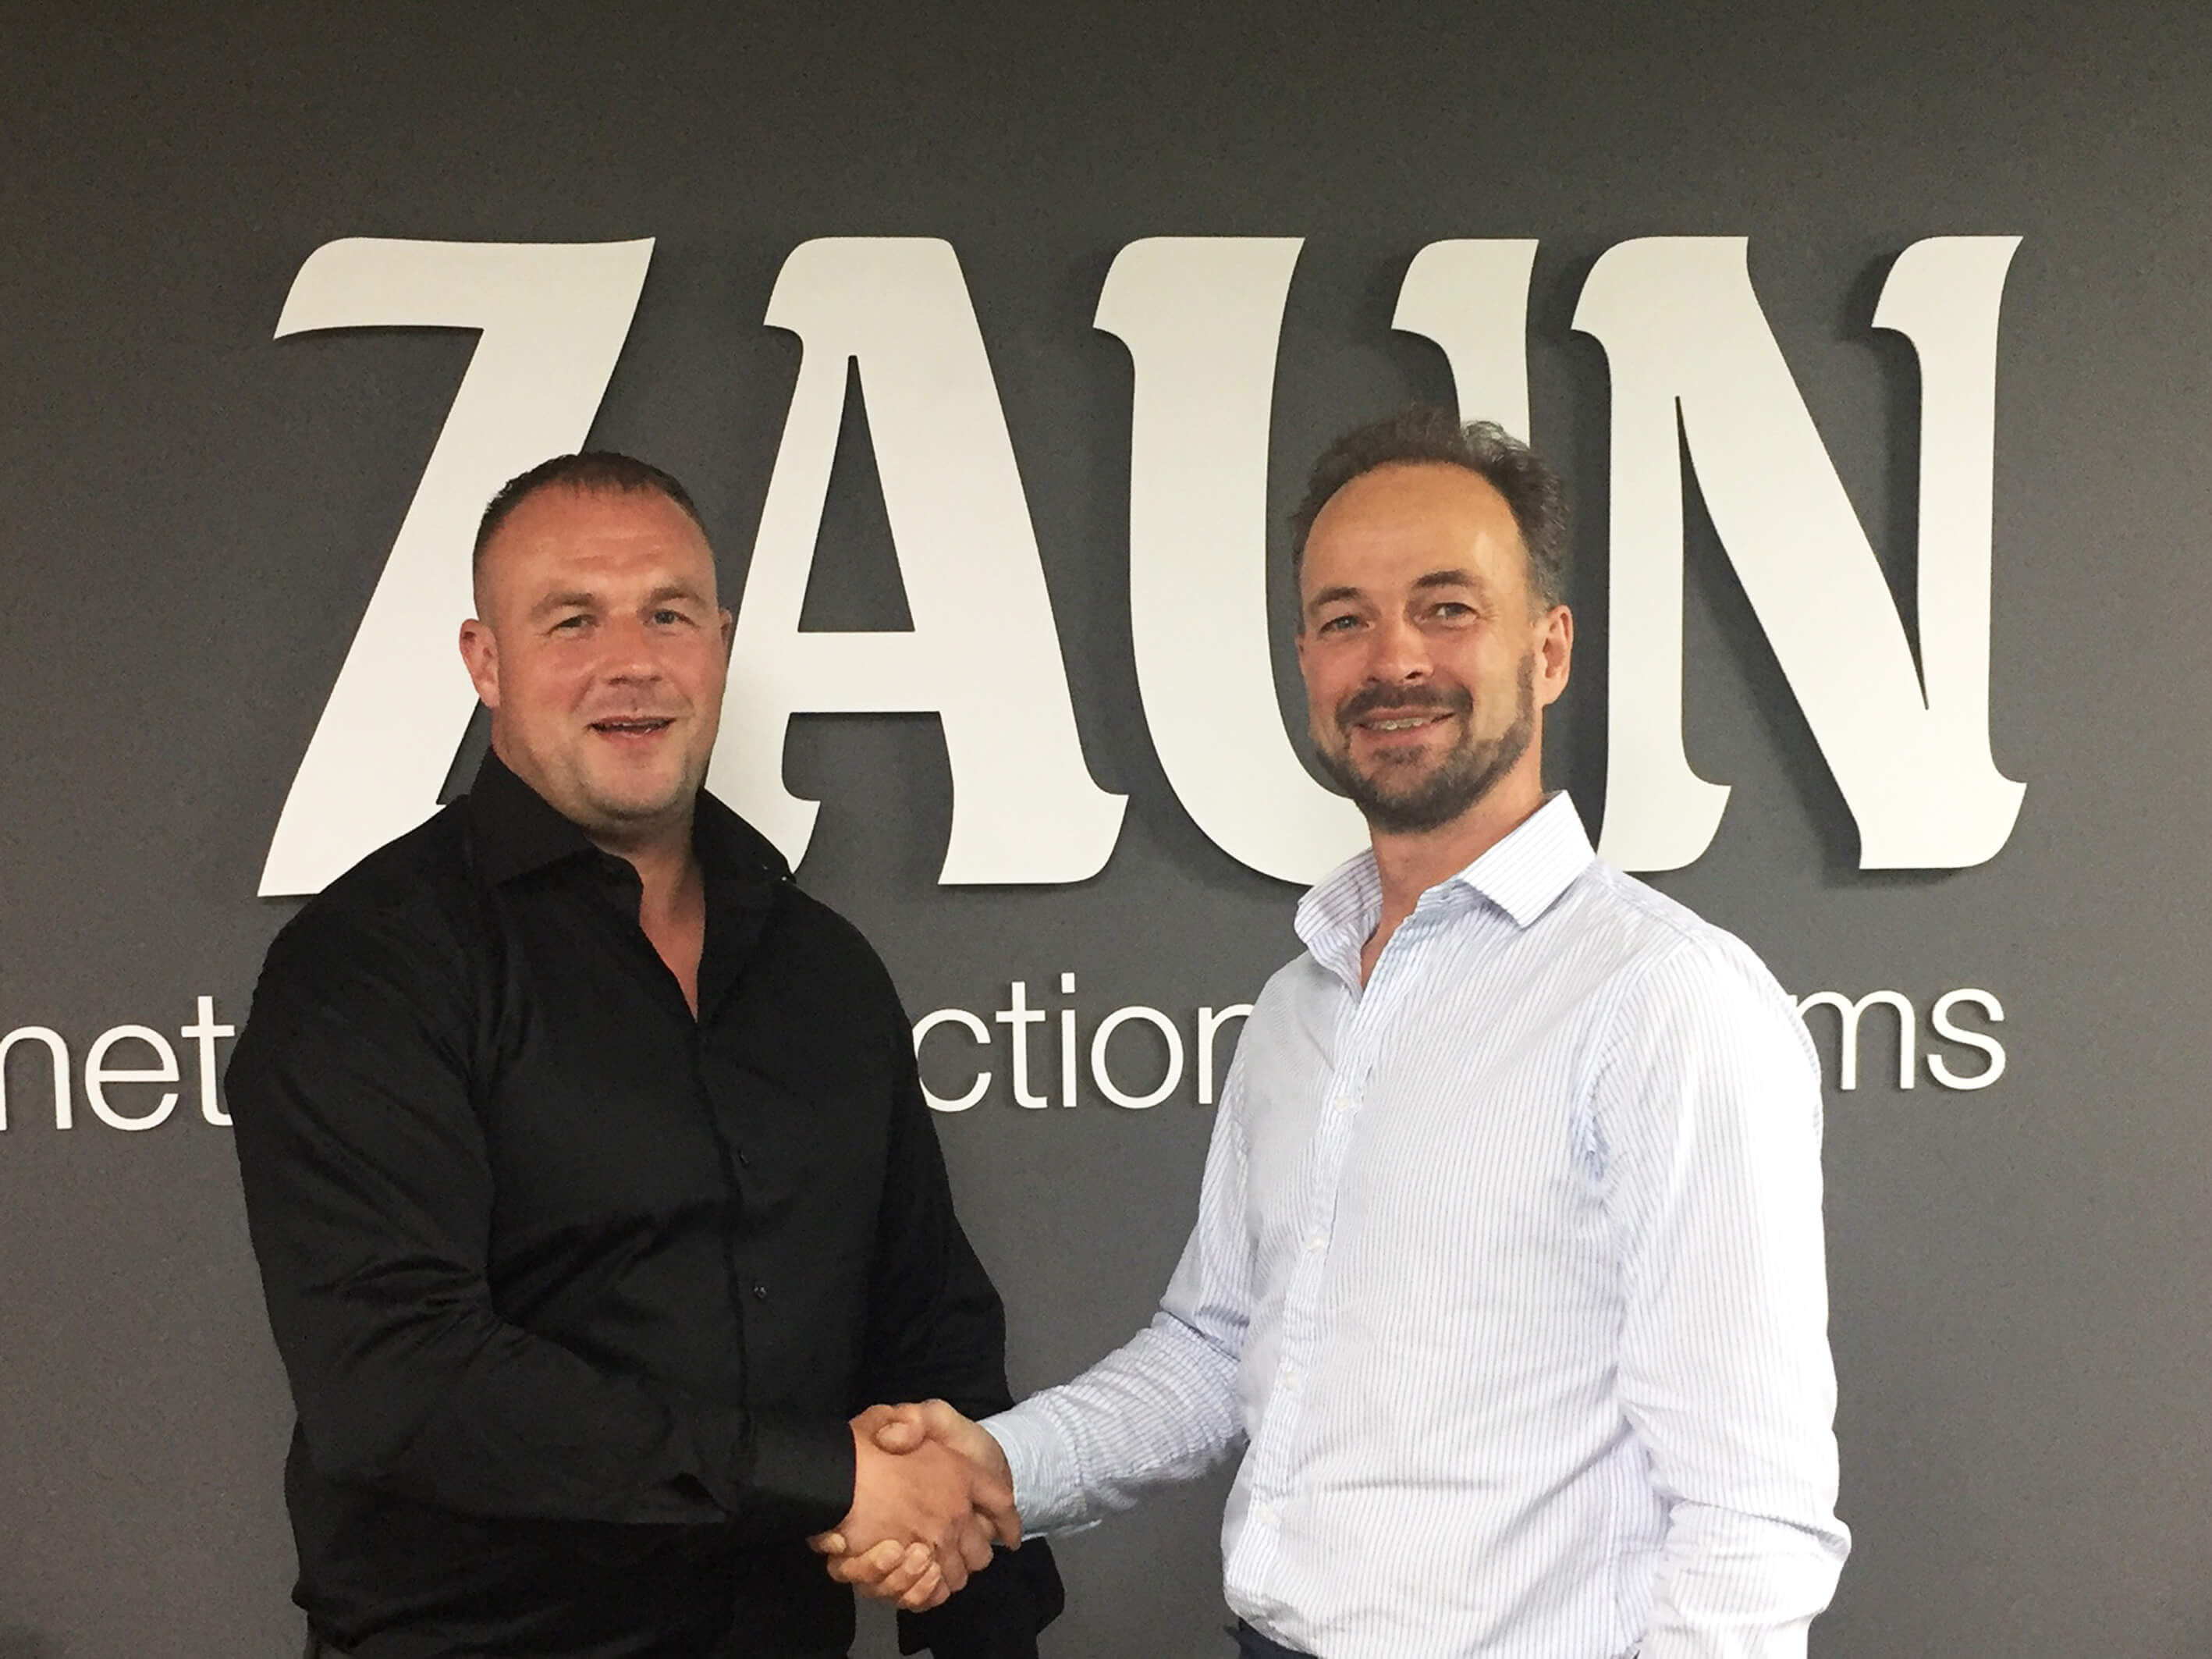 Mike Fellows of Fastline (left) and Alastair Henman of Zaun shake on creating a'combined powerhouse'.